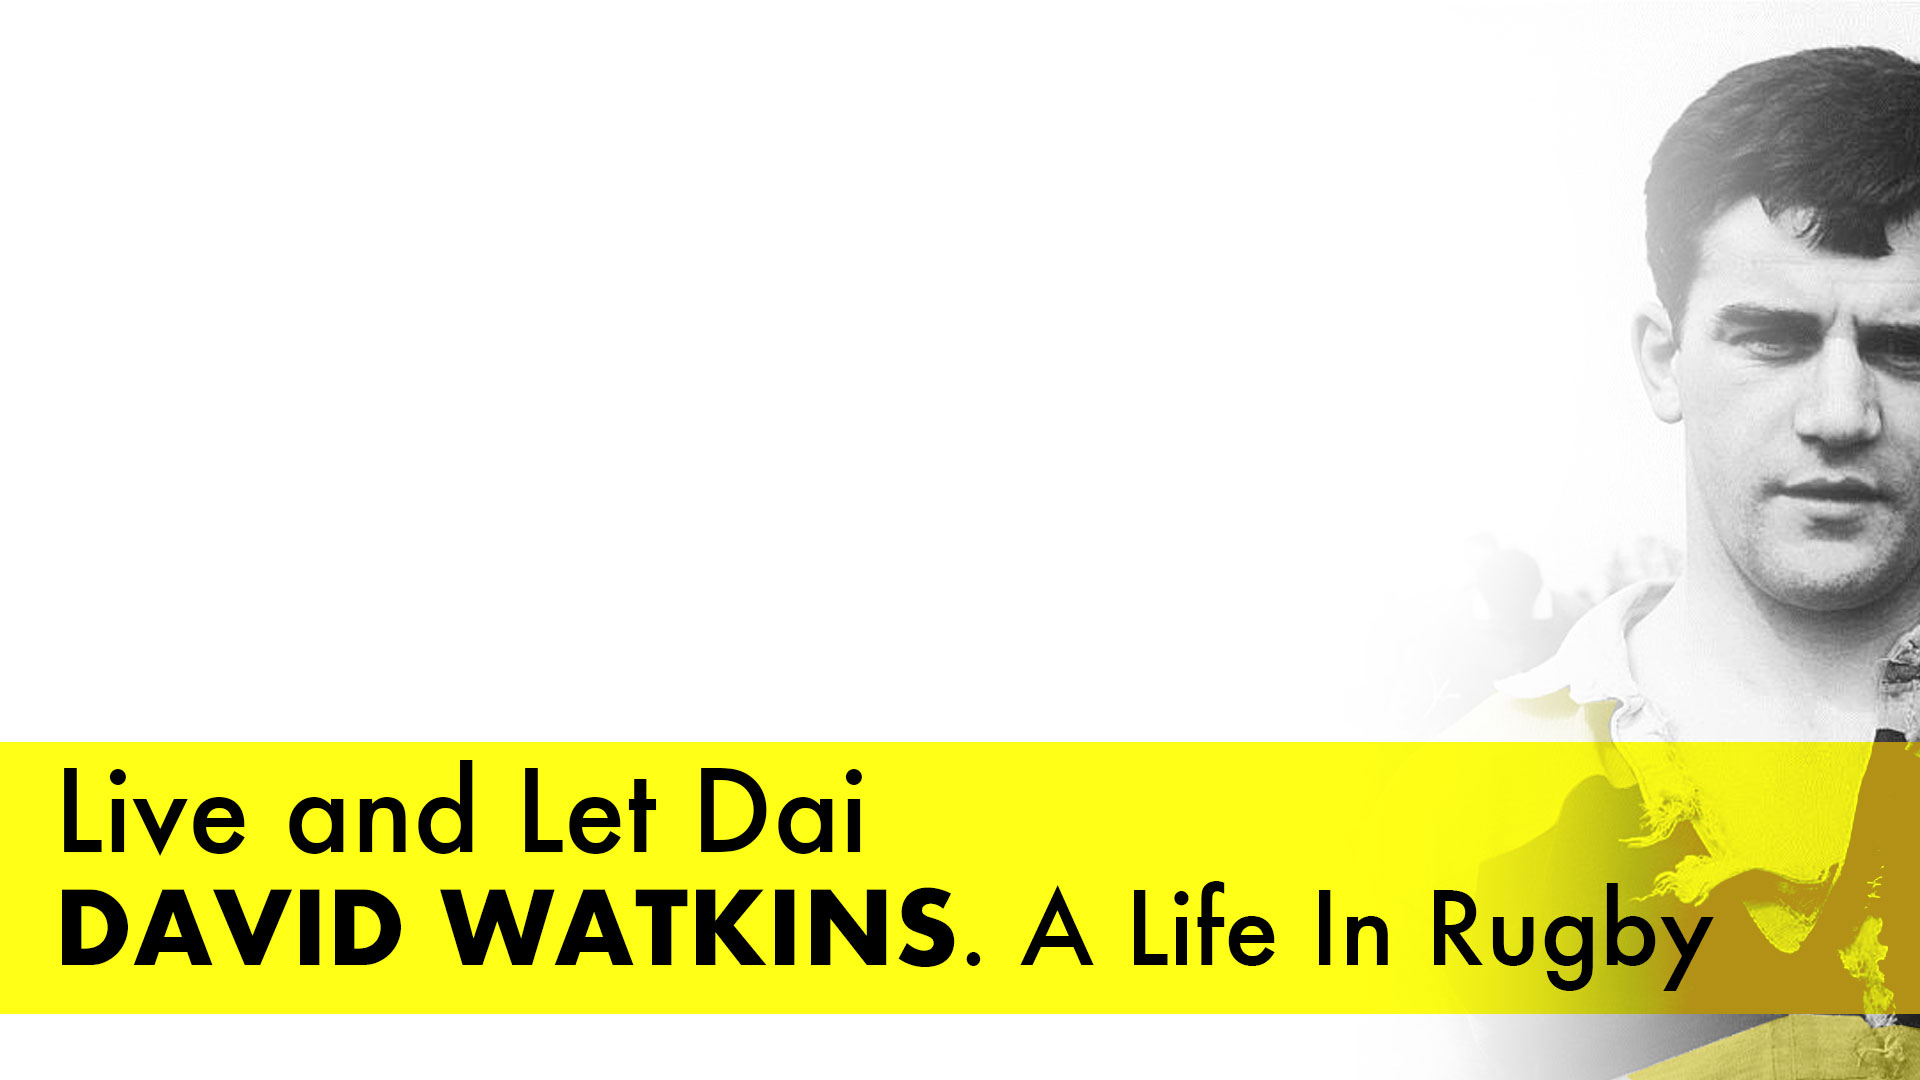 Live and Let Dai. David Watkins. A Life In Rugby - Life story of a rugby legend